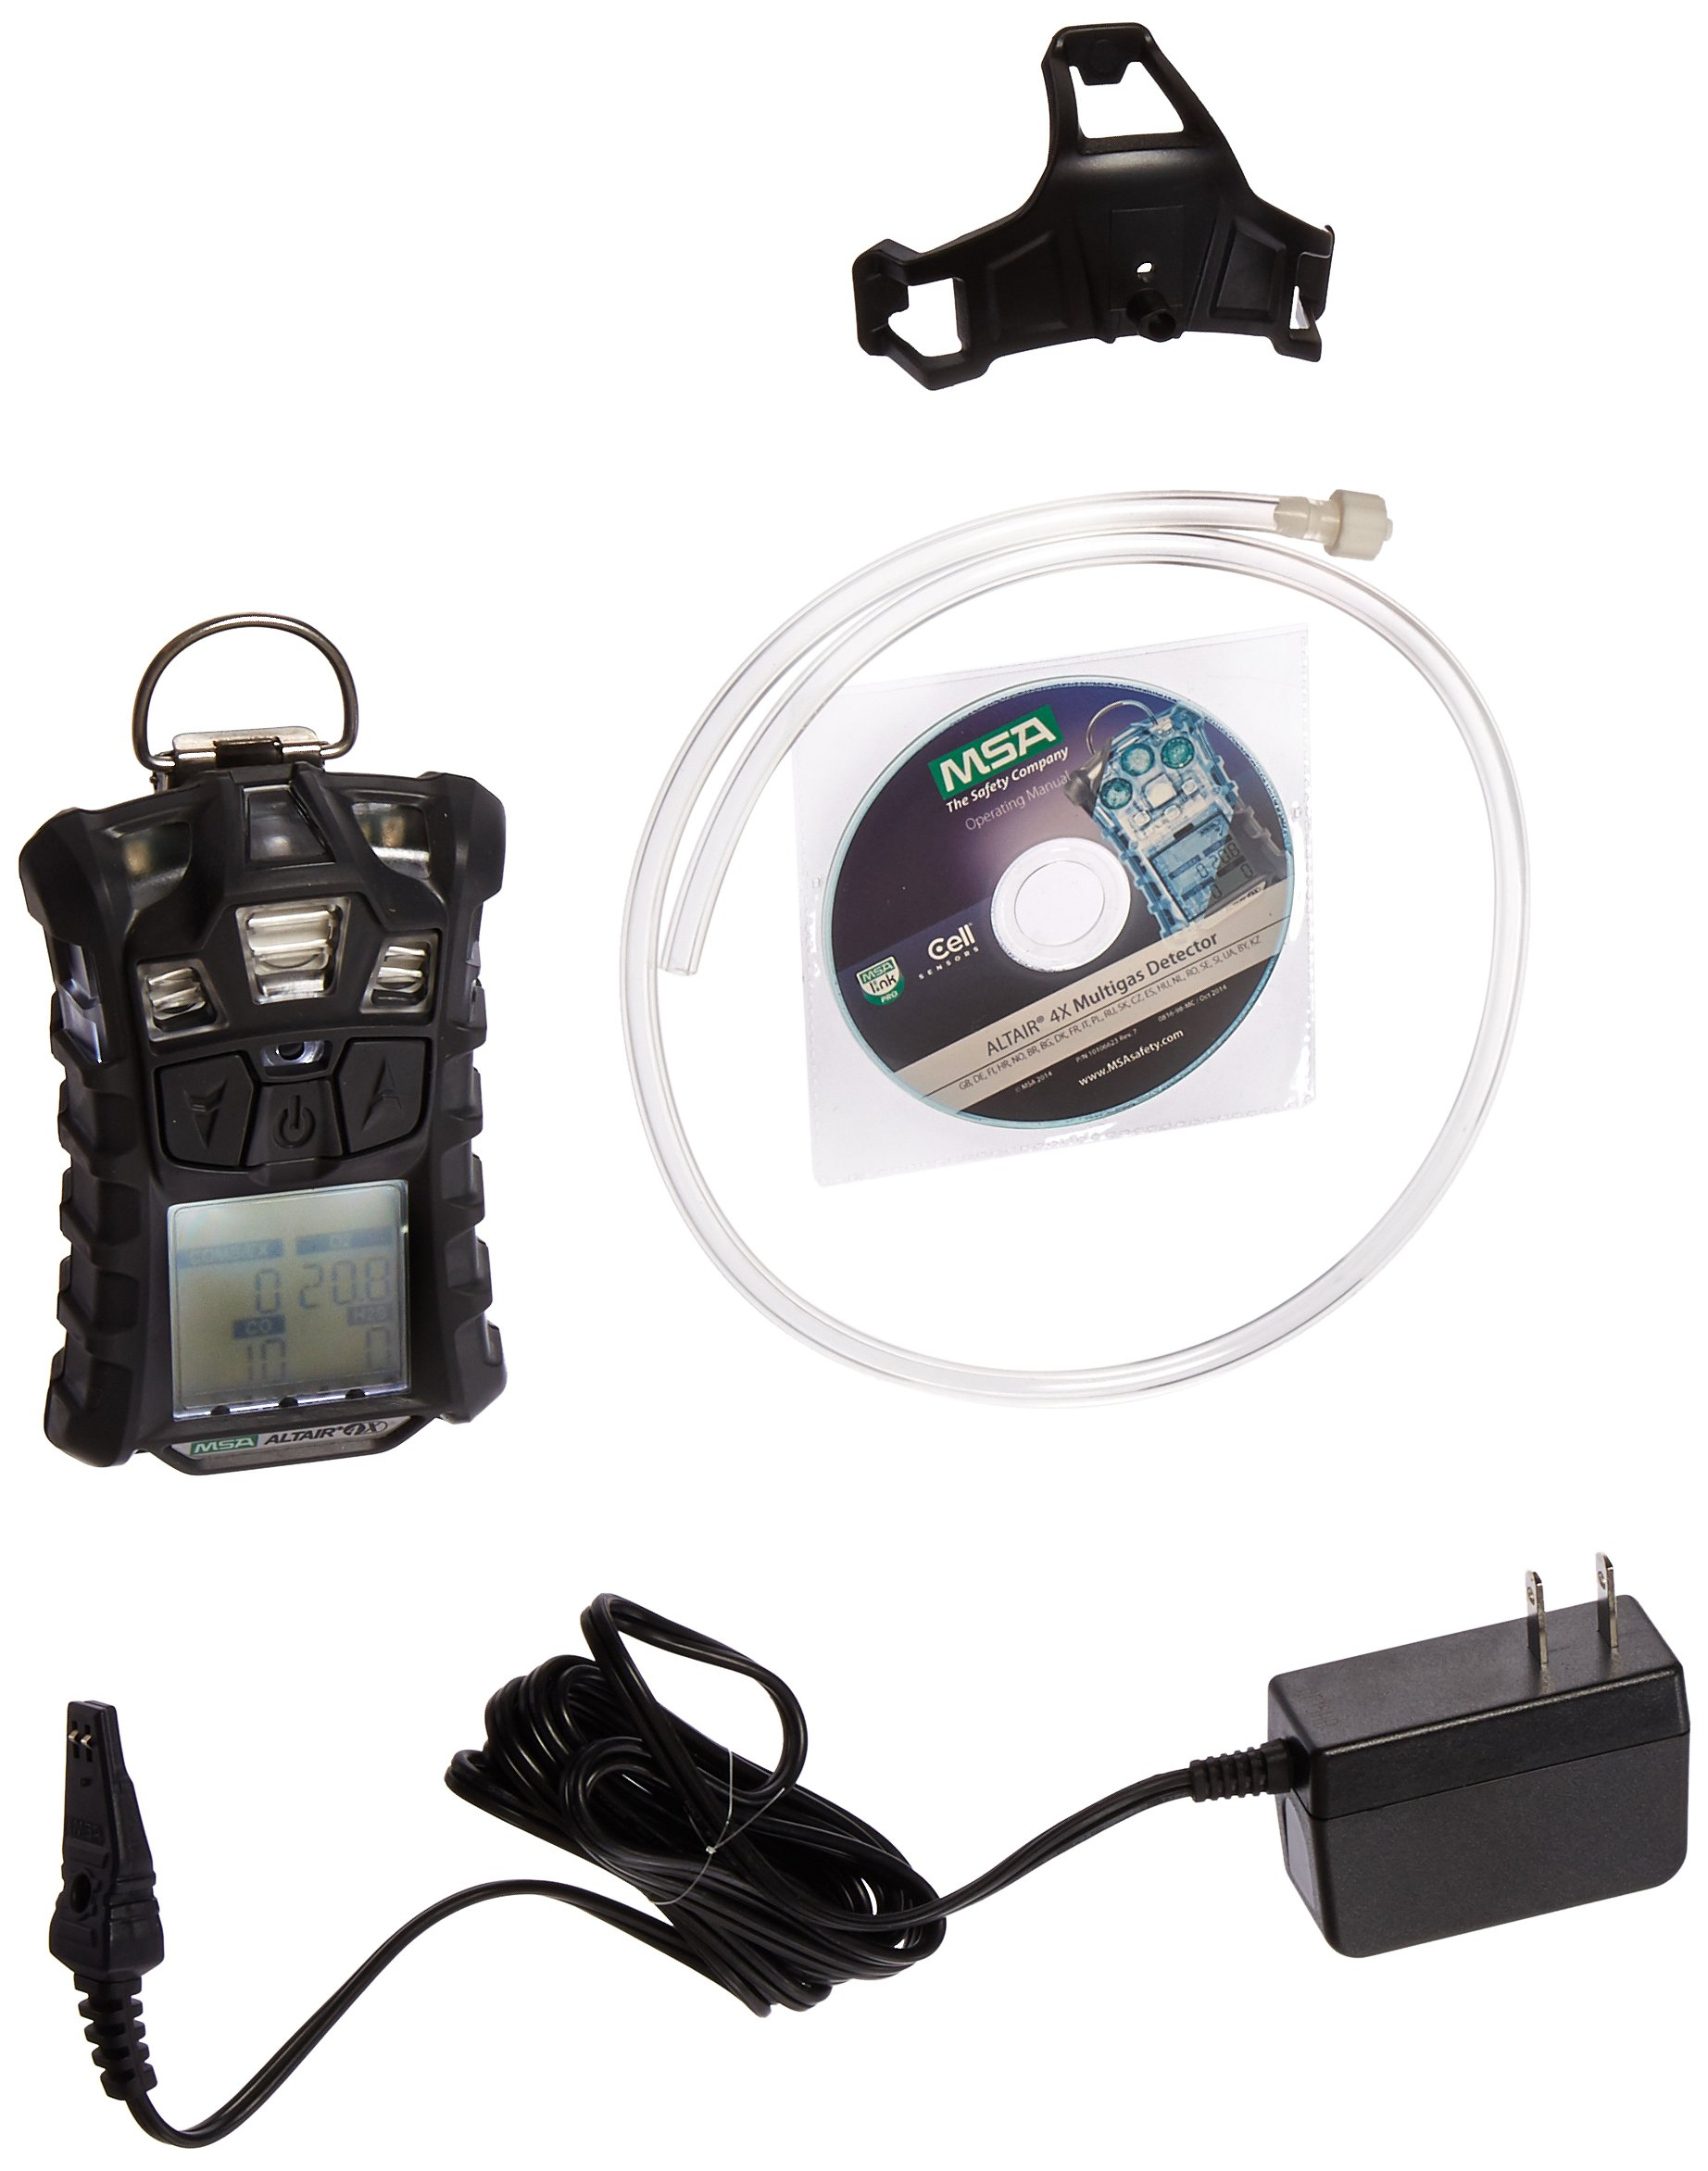 MSA (Mine Safety Appliances) 10107602 Altair 4X Portable Combustible Gas, Oxygen, Hydrogen Sulfide and Carbon Monoxide Monitor with Motion Alert